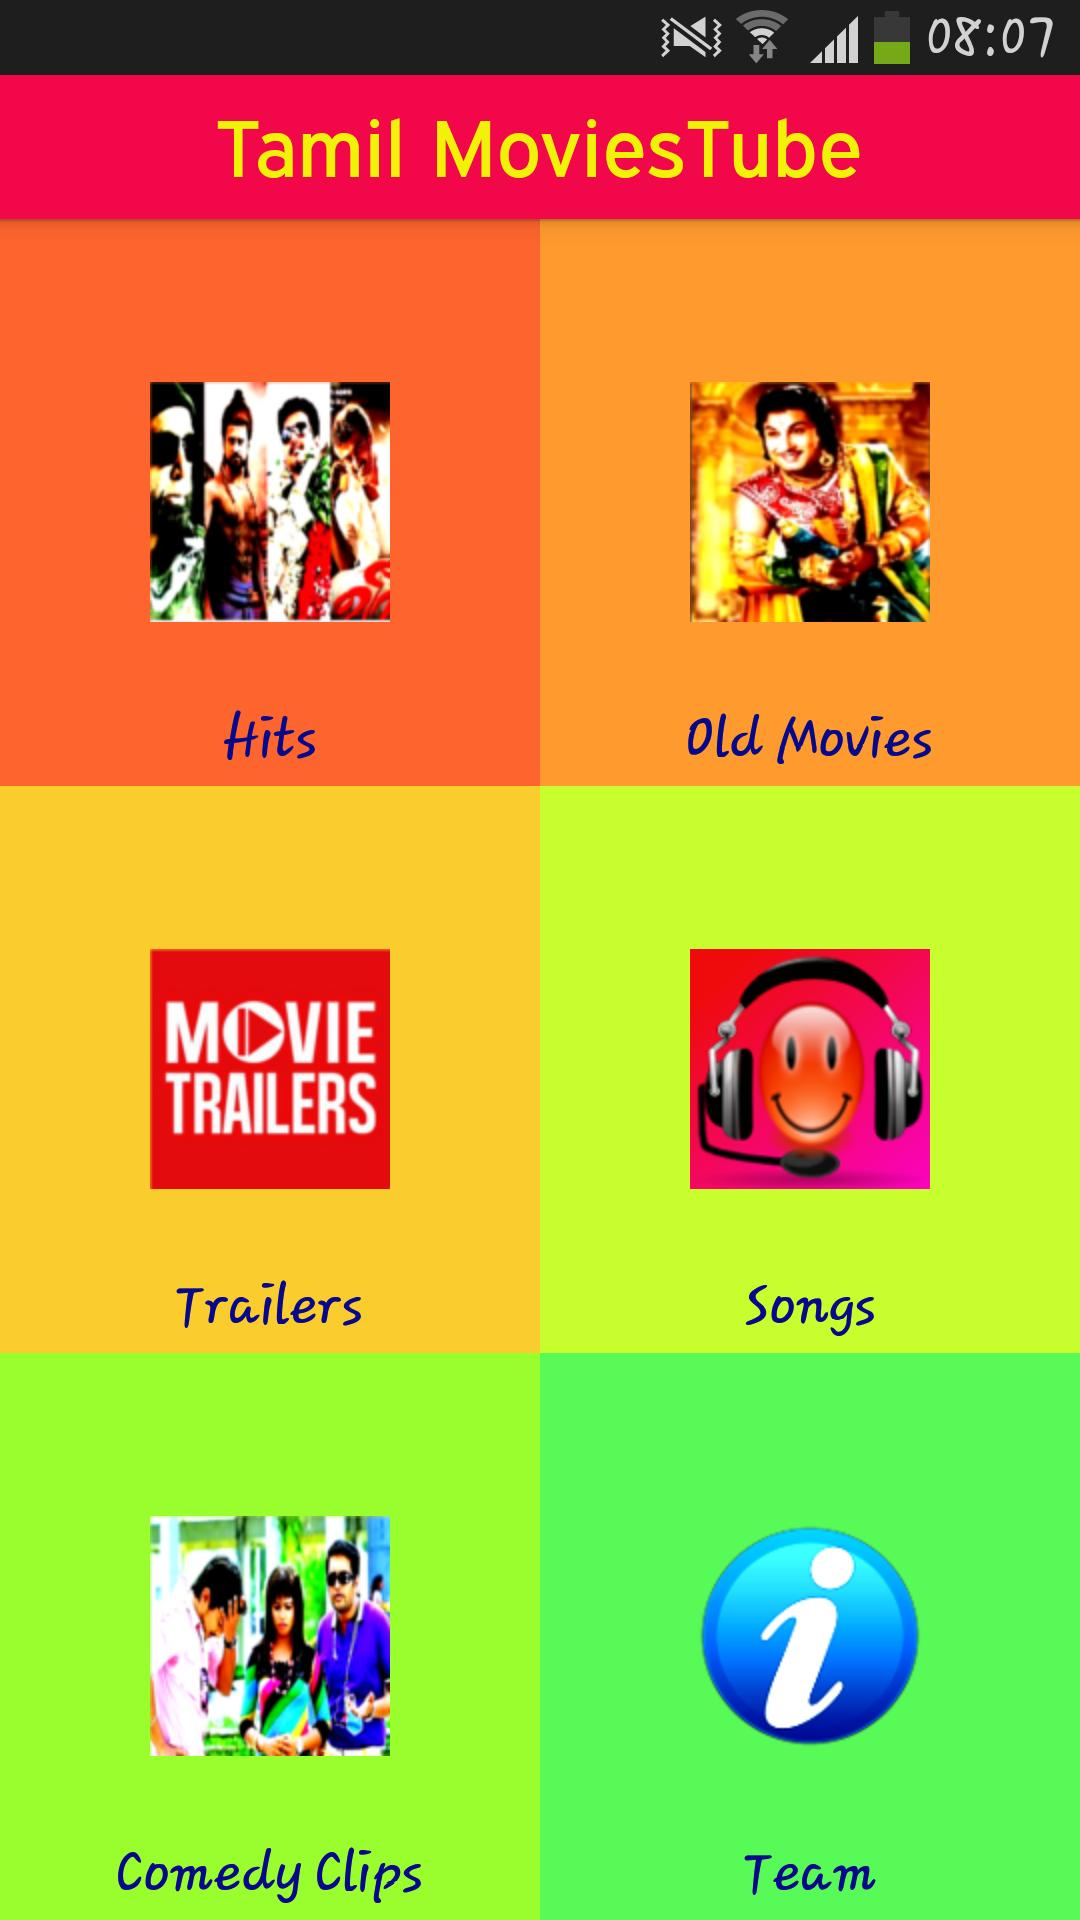 Tamil Movies Tube for Android - APK Download